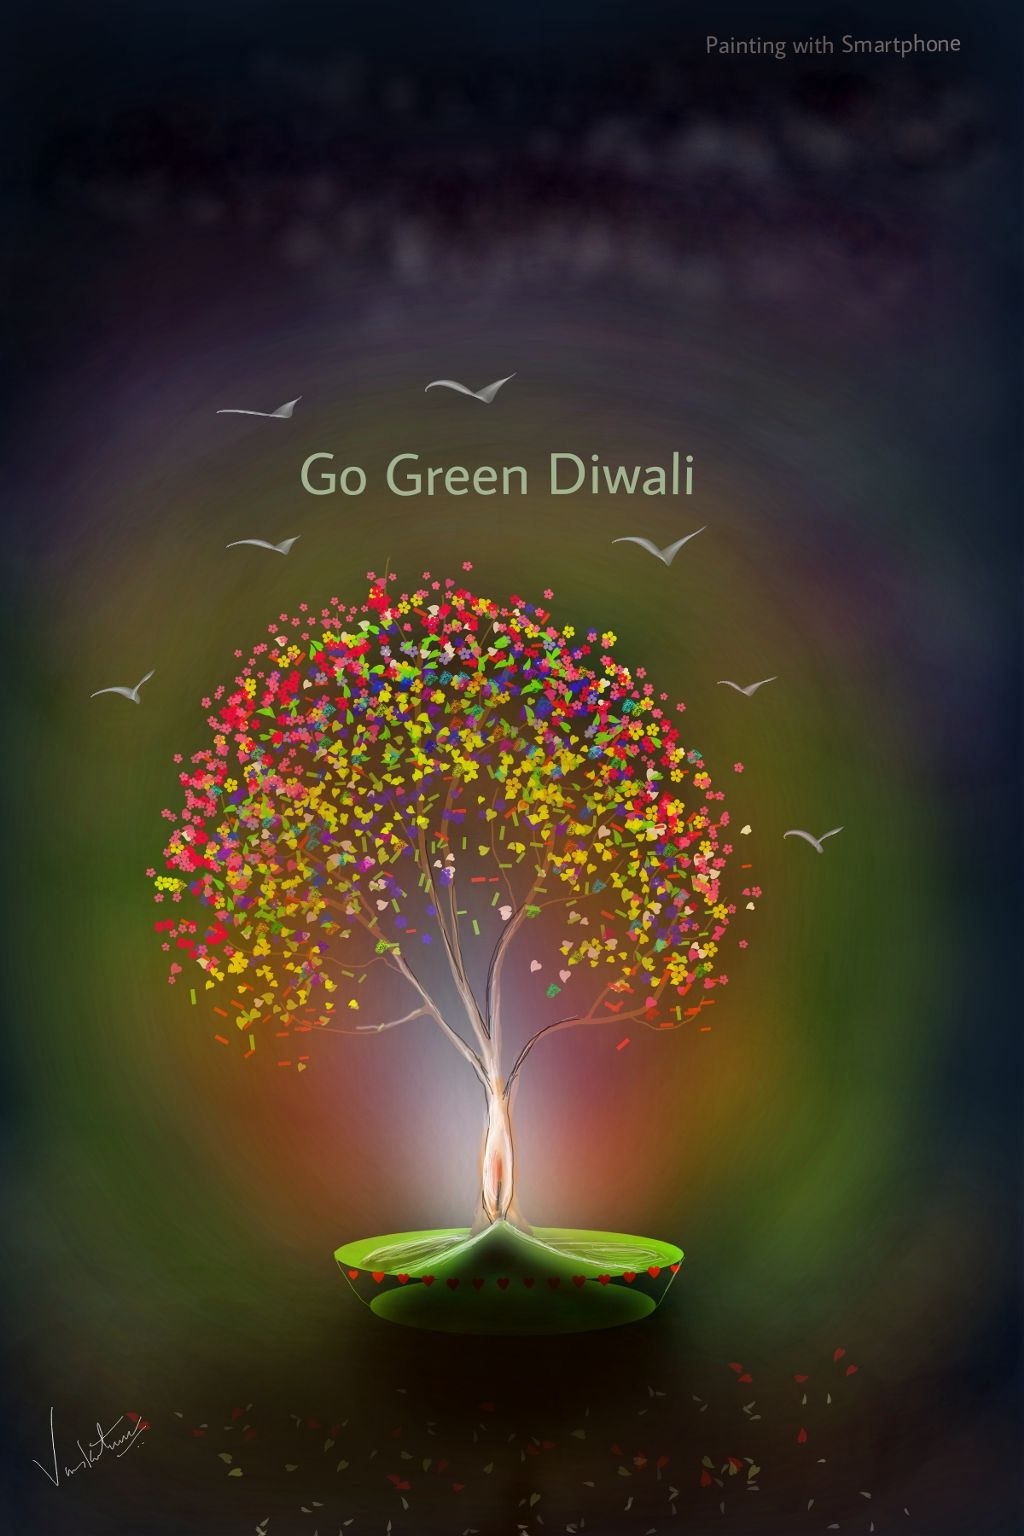 #drawing #share #celebrate #nature #diwali